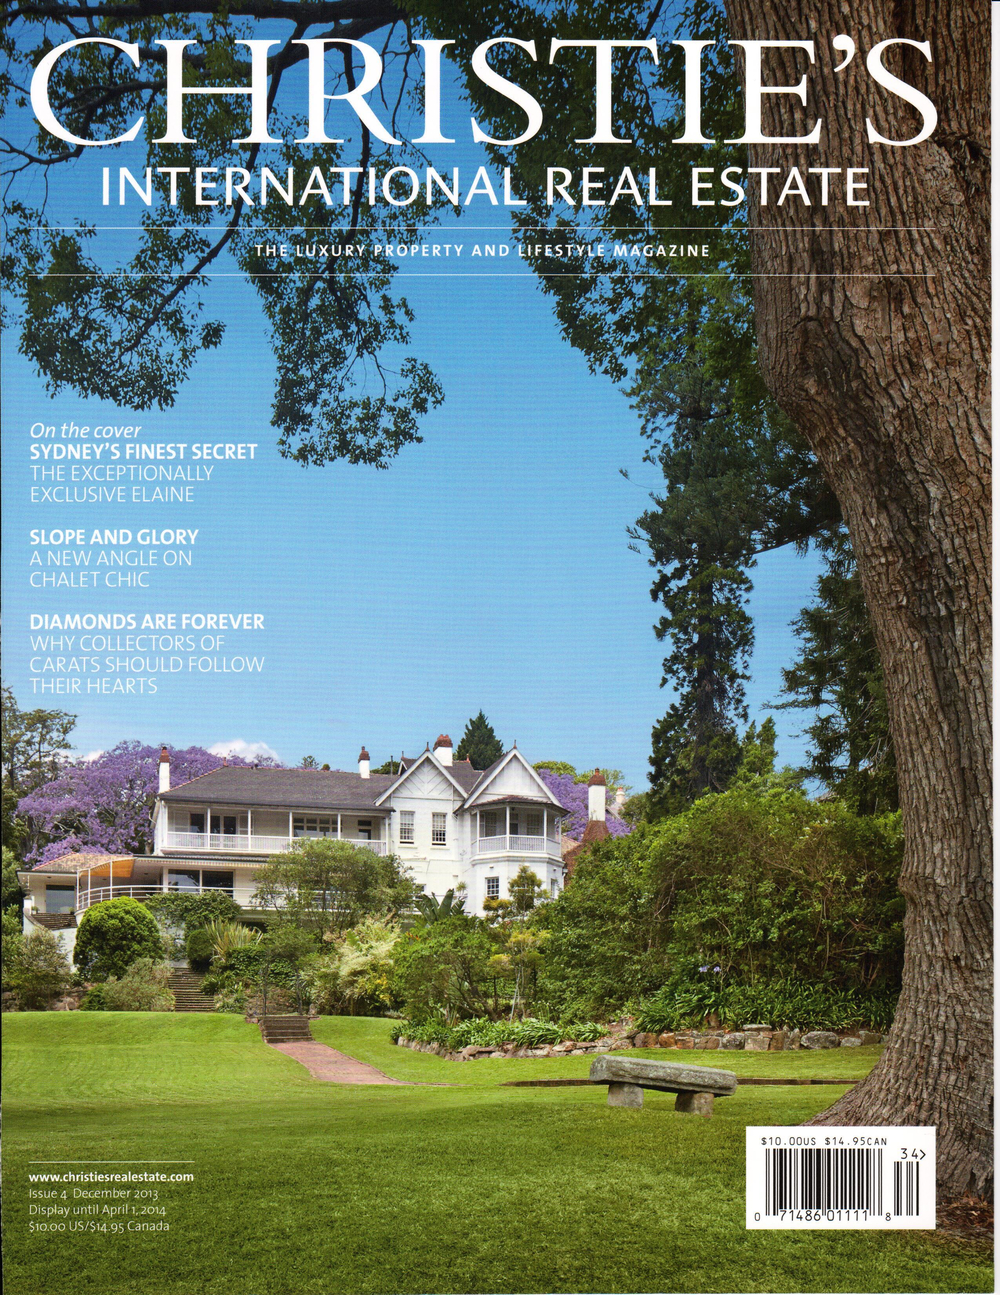 Christie's Real Estate 2013 cover.jpg